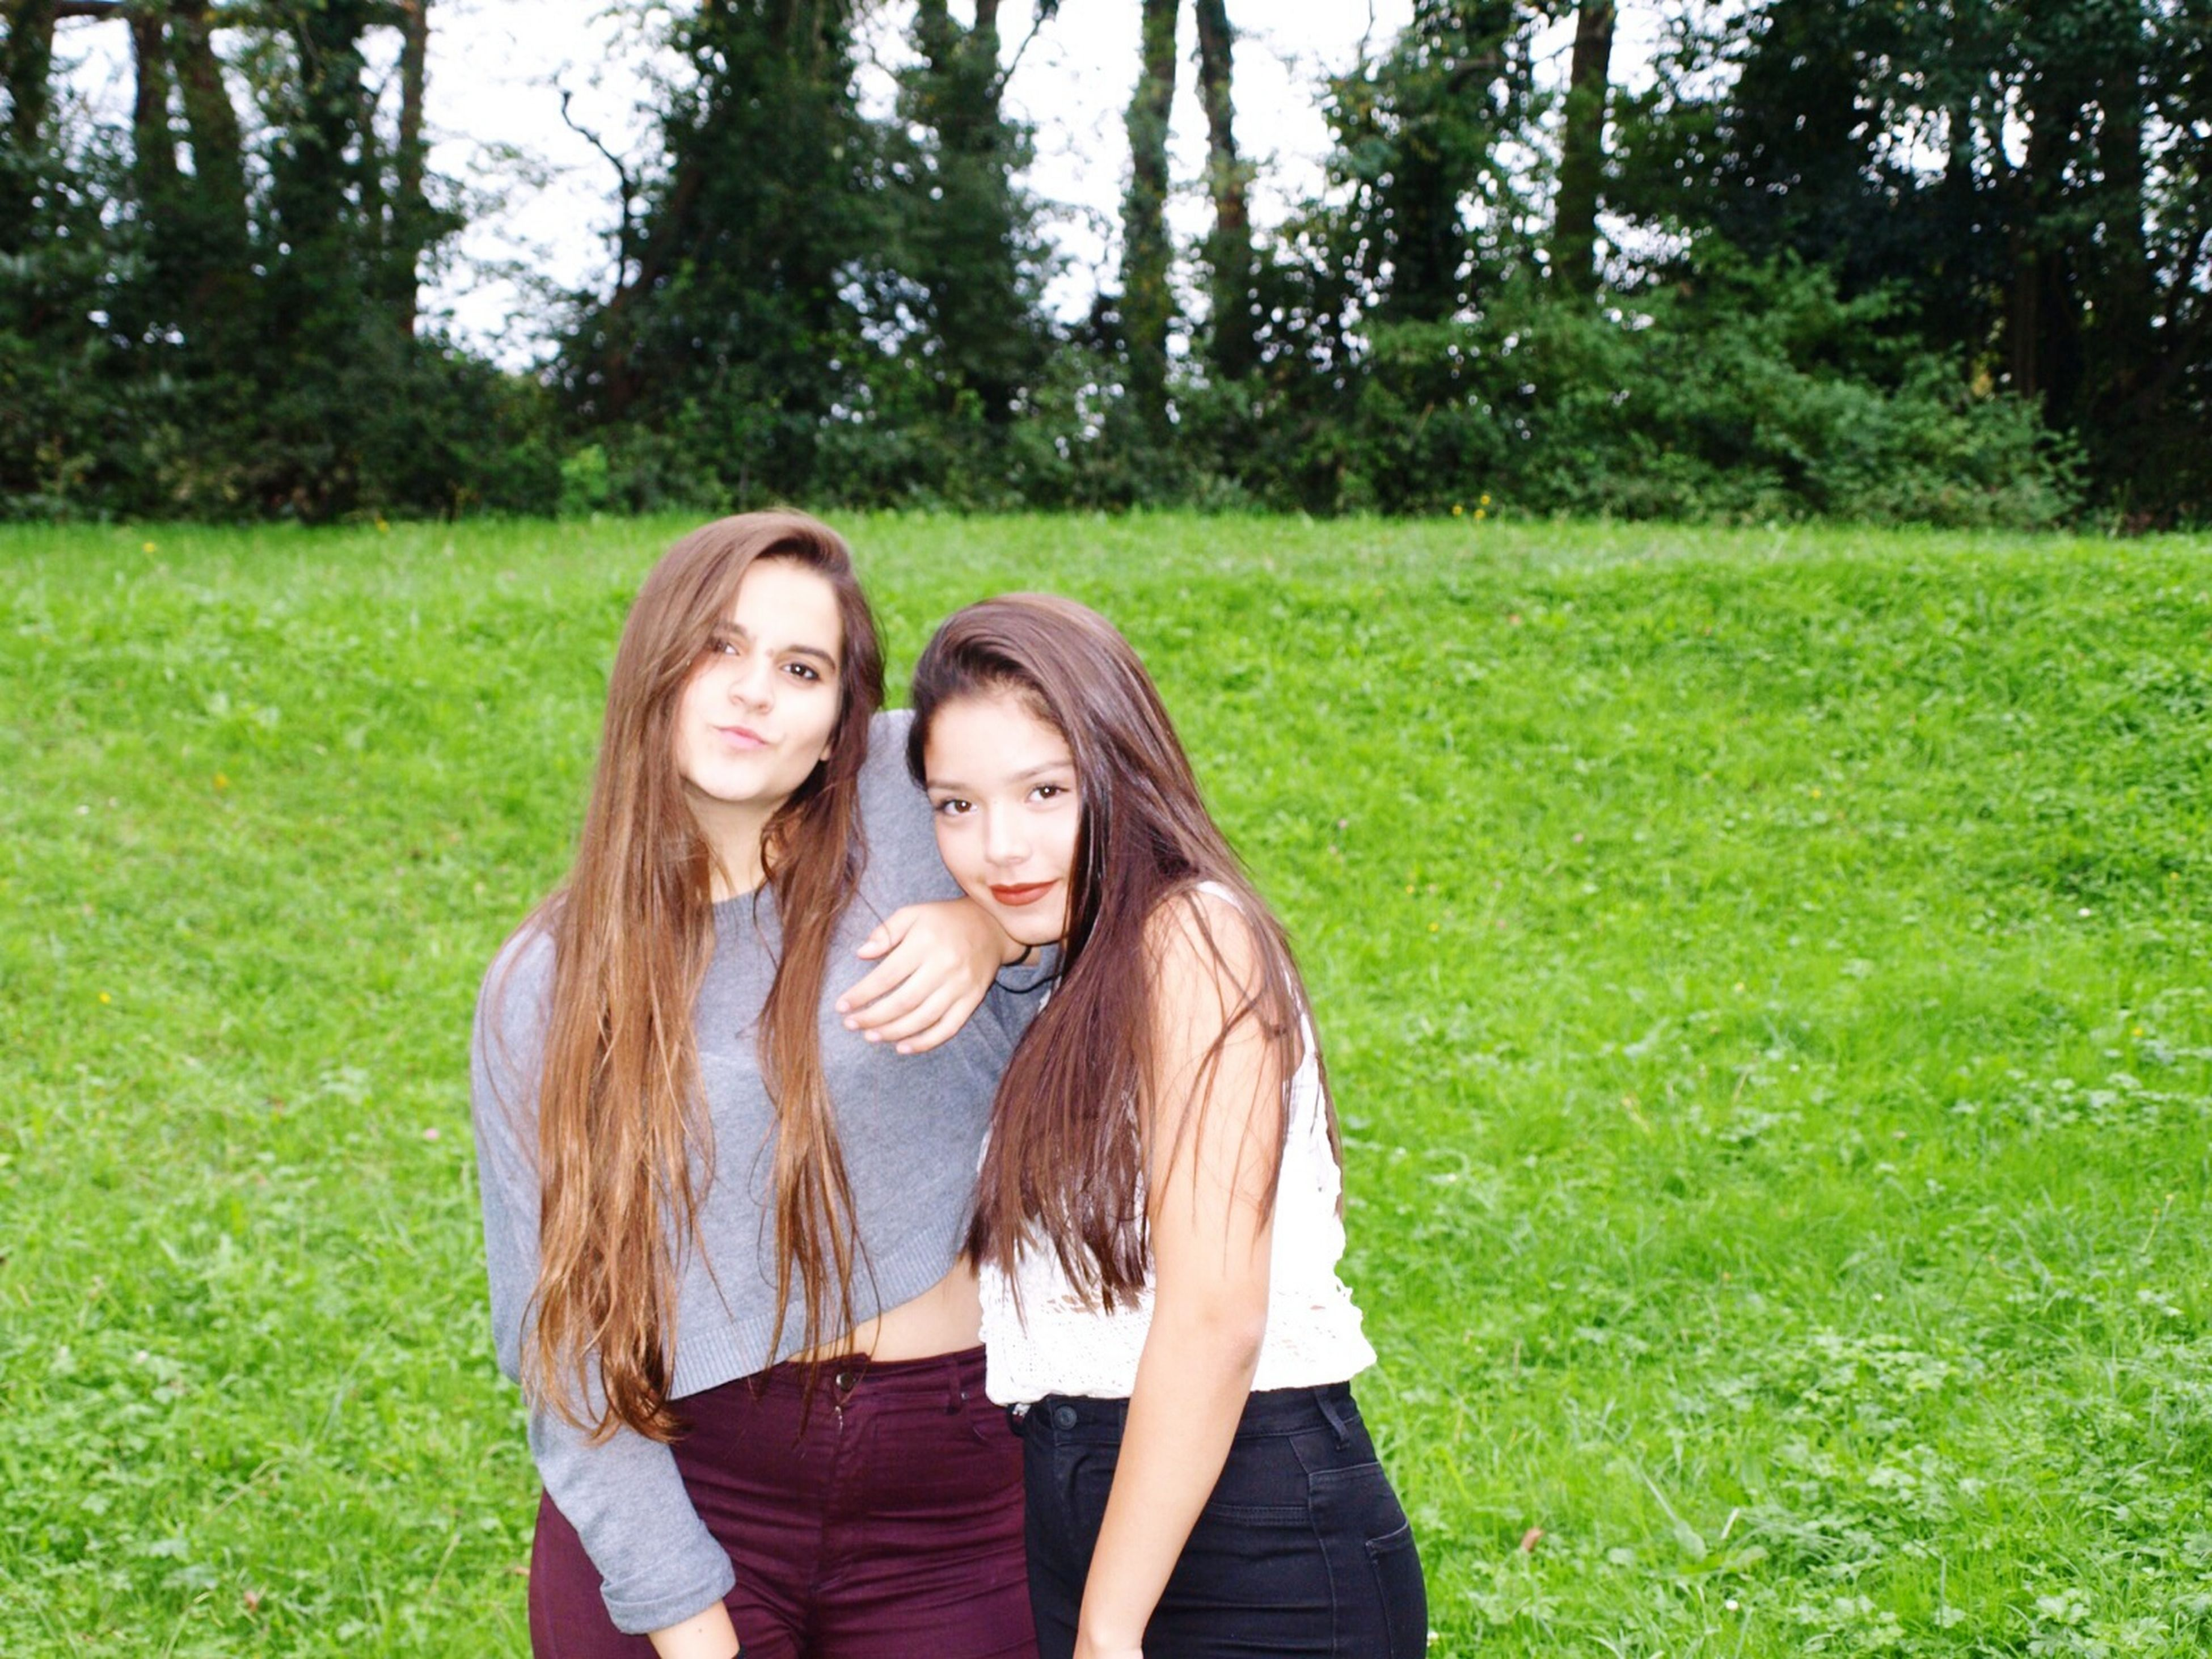 person, young adult, young women, lifestyles, grass, smiling, looking at camera, portrait, leisure activity, casual clothing, long hair, tree, front view, happiness, field, three quarter length, standing